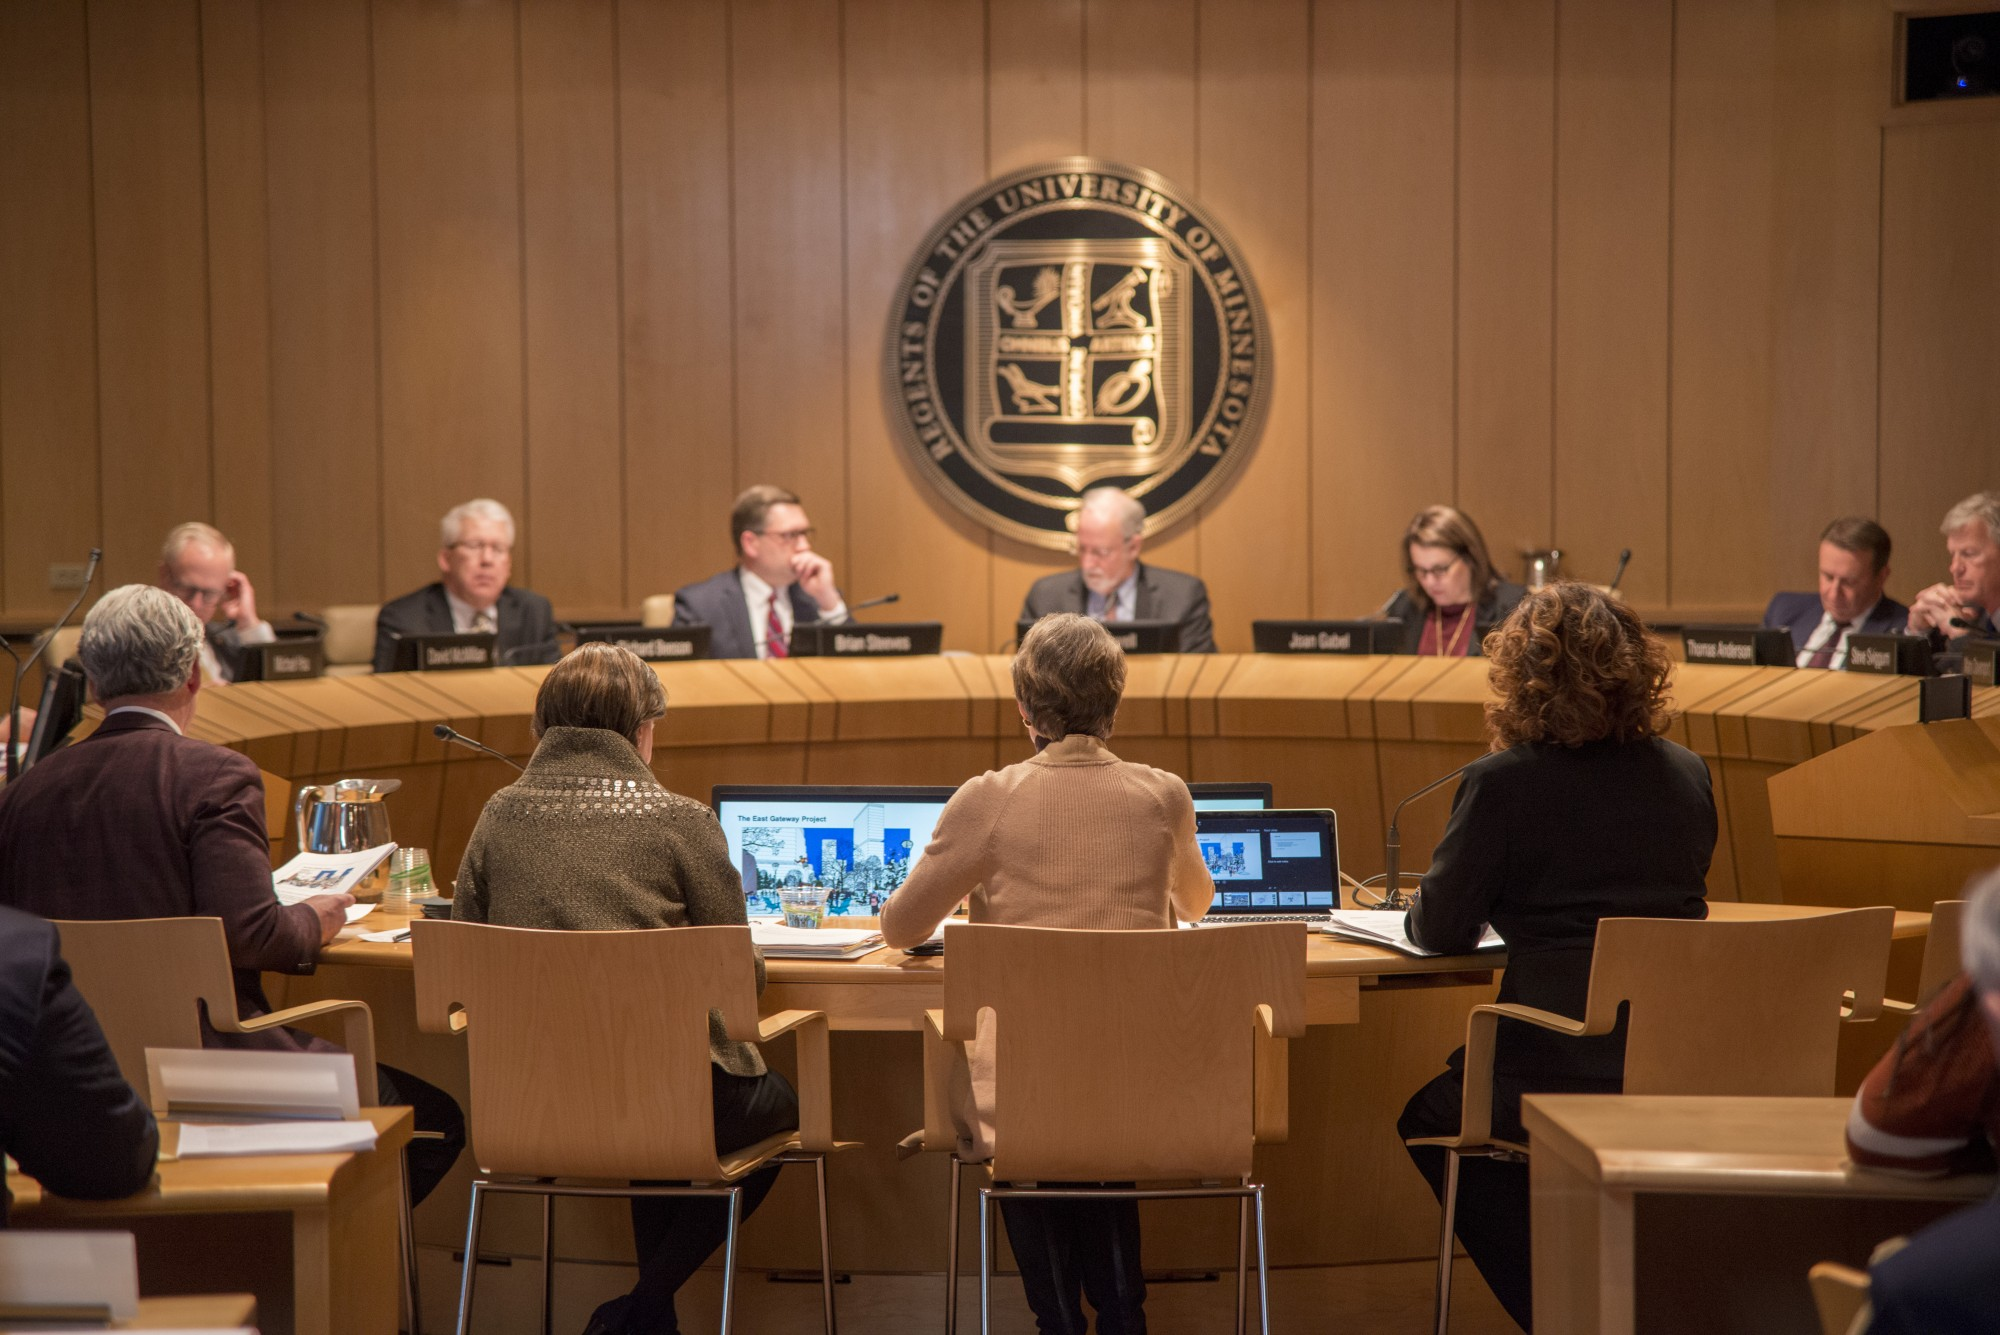 The Board of Regents meet about the East Gateway Project Resolution, on Friday, Feb. 14, 2020. The Board of Regents holds a meeting each month.